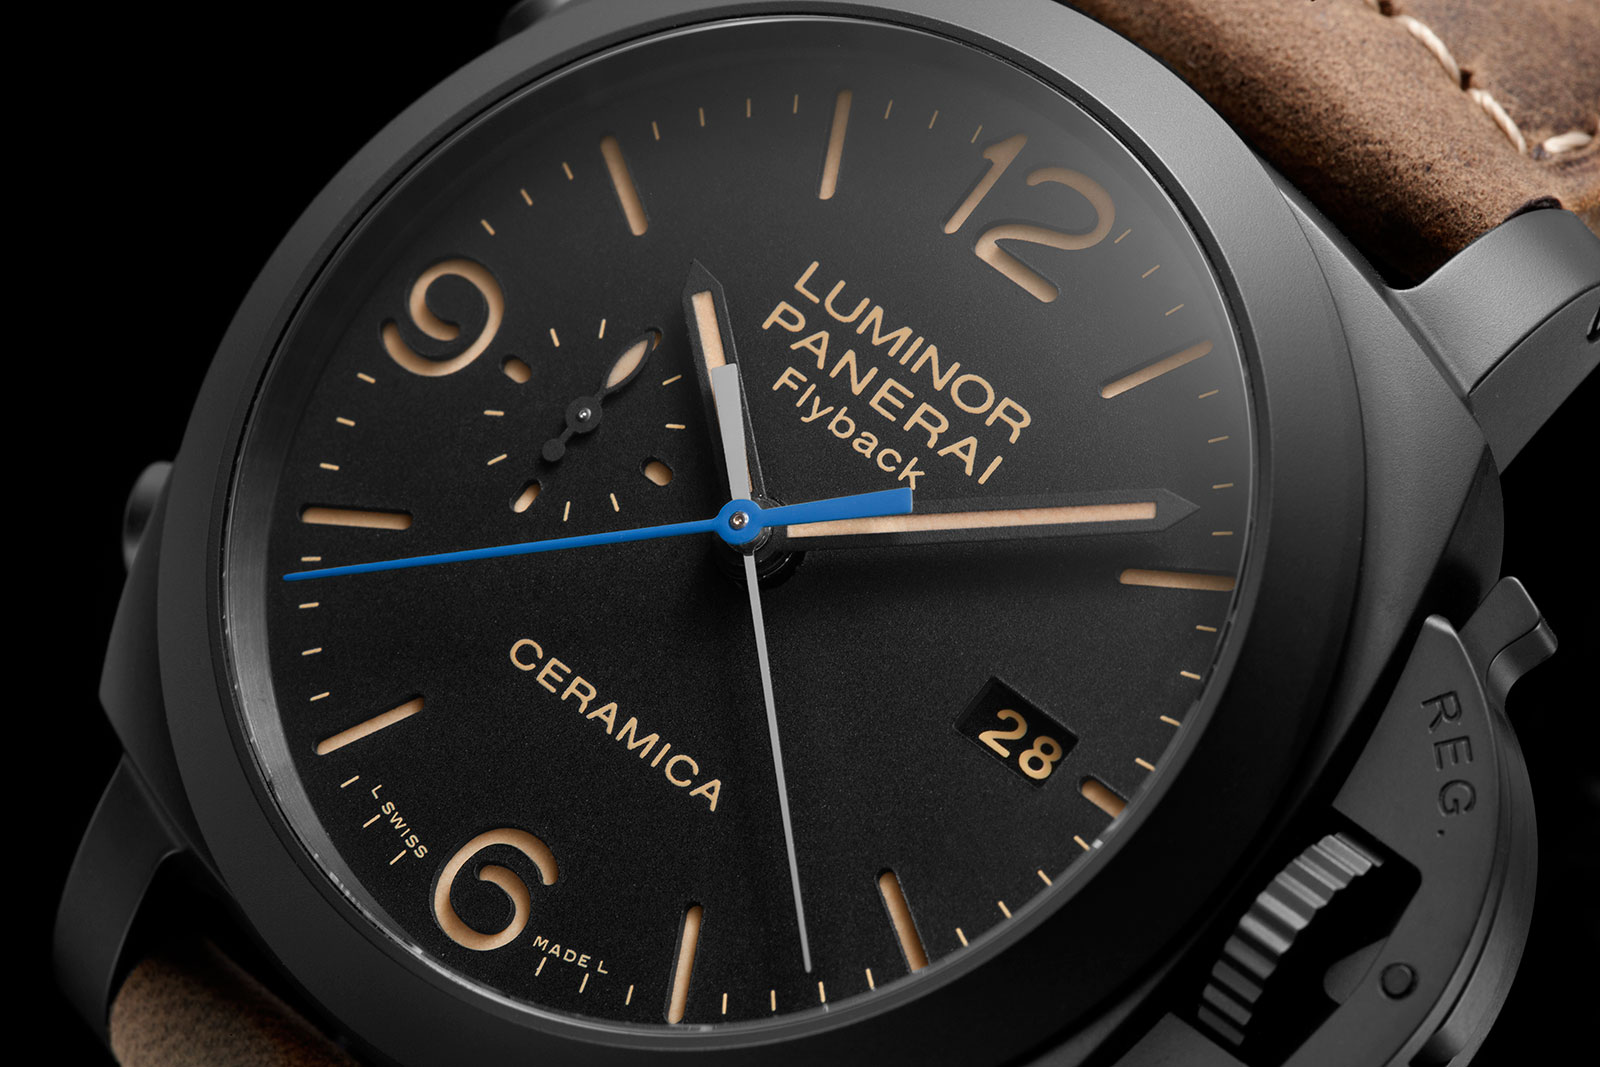 Panerai-Luminor-1950-3-Days-Chrono-Flyback-Automatic-Ceramica-PAM580-001